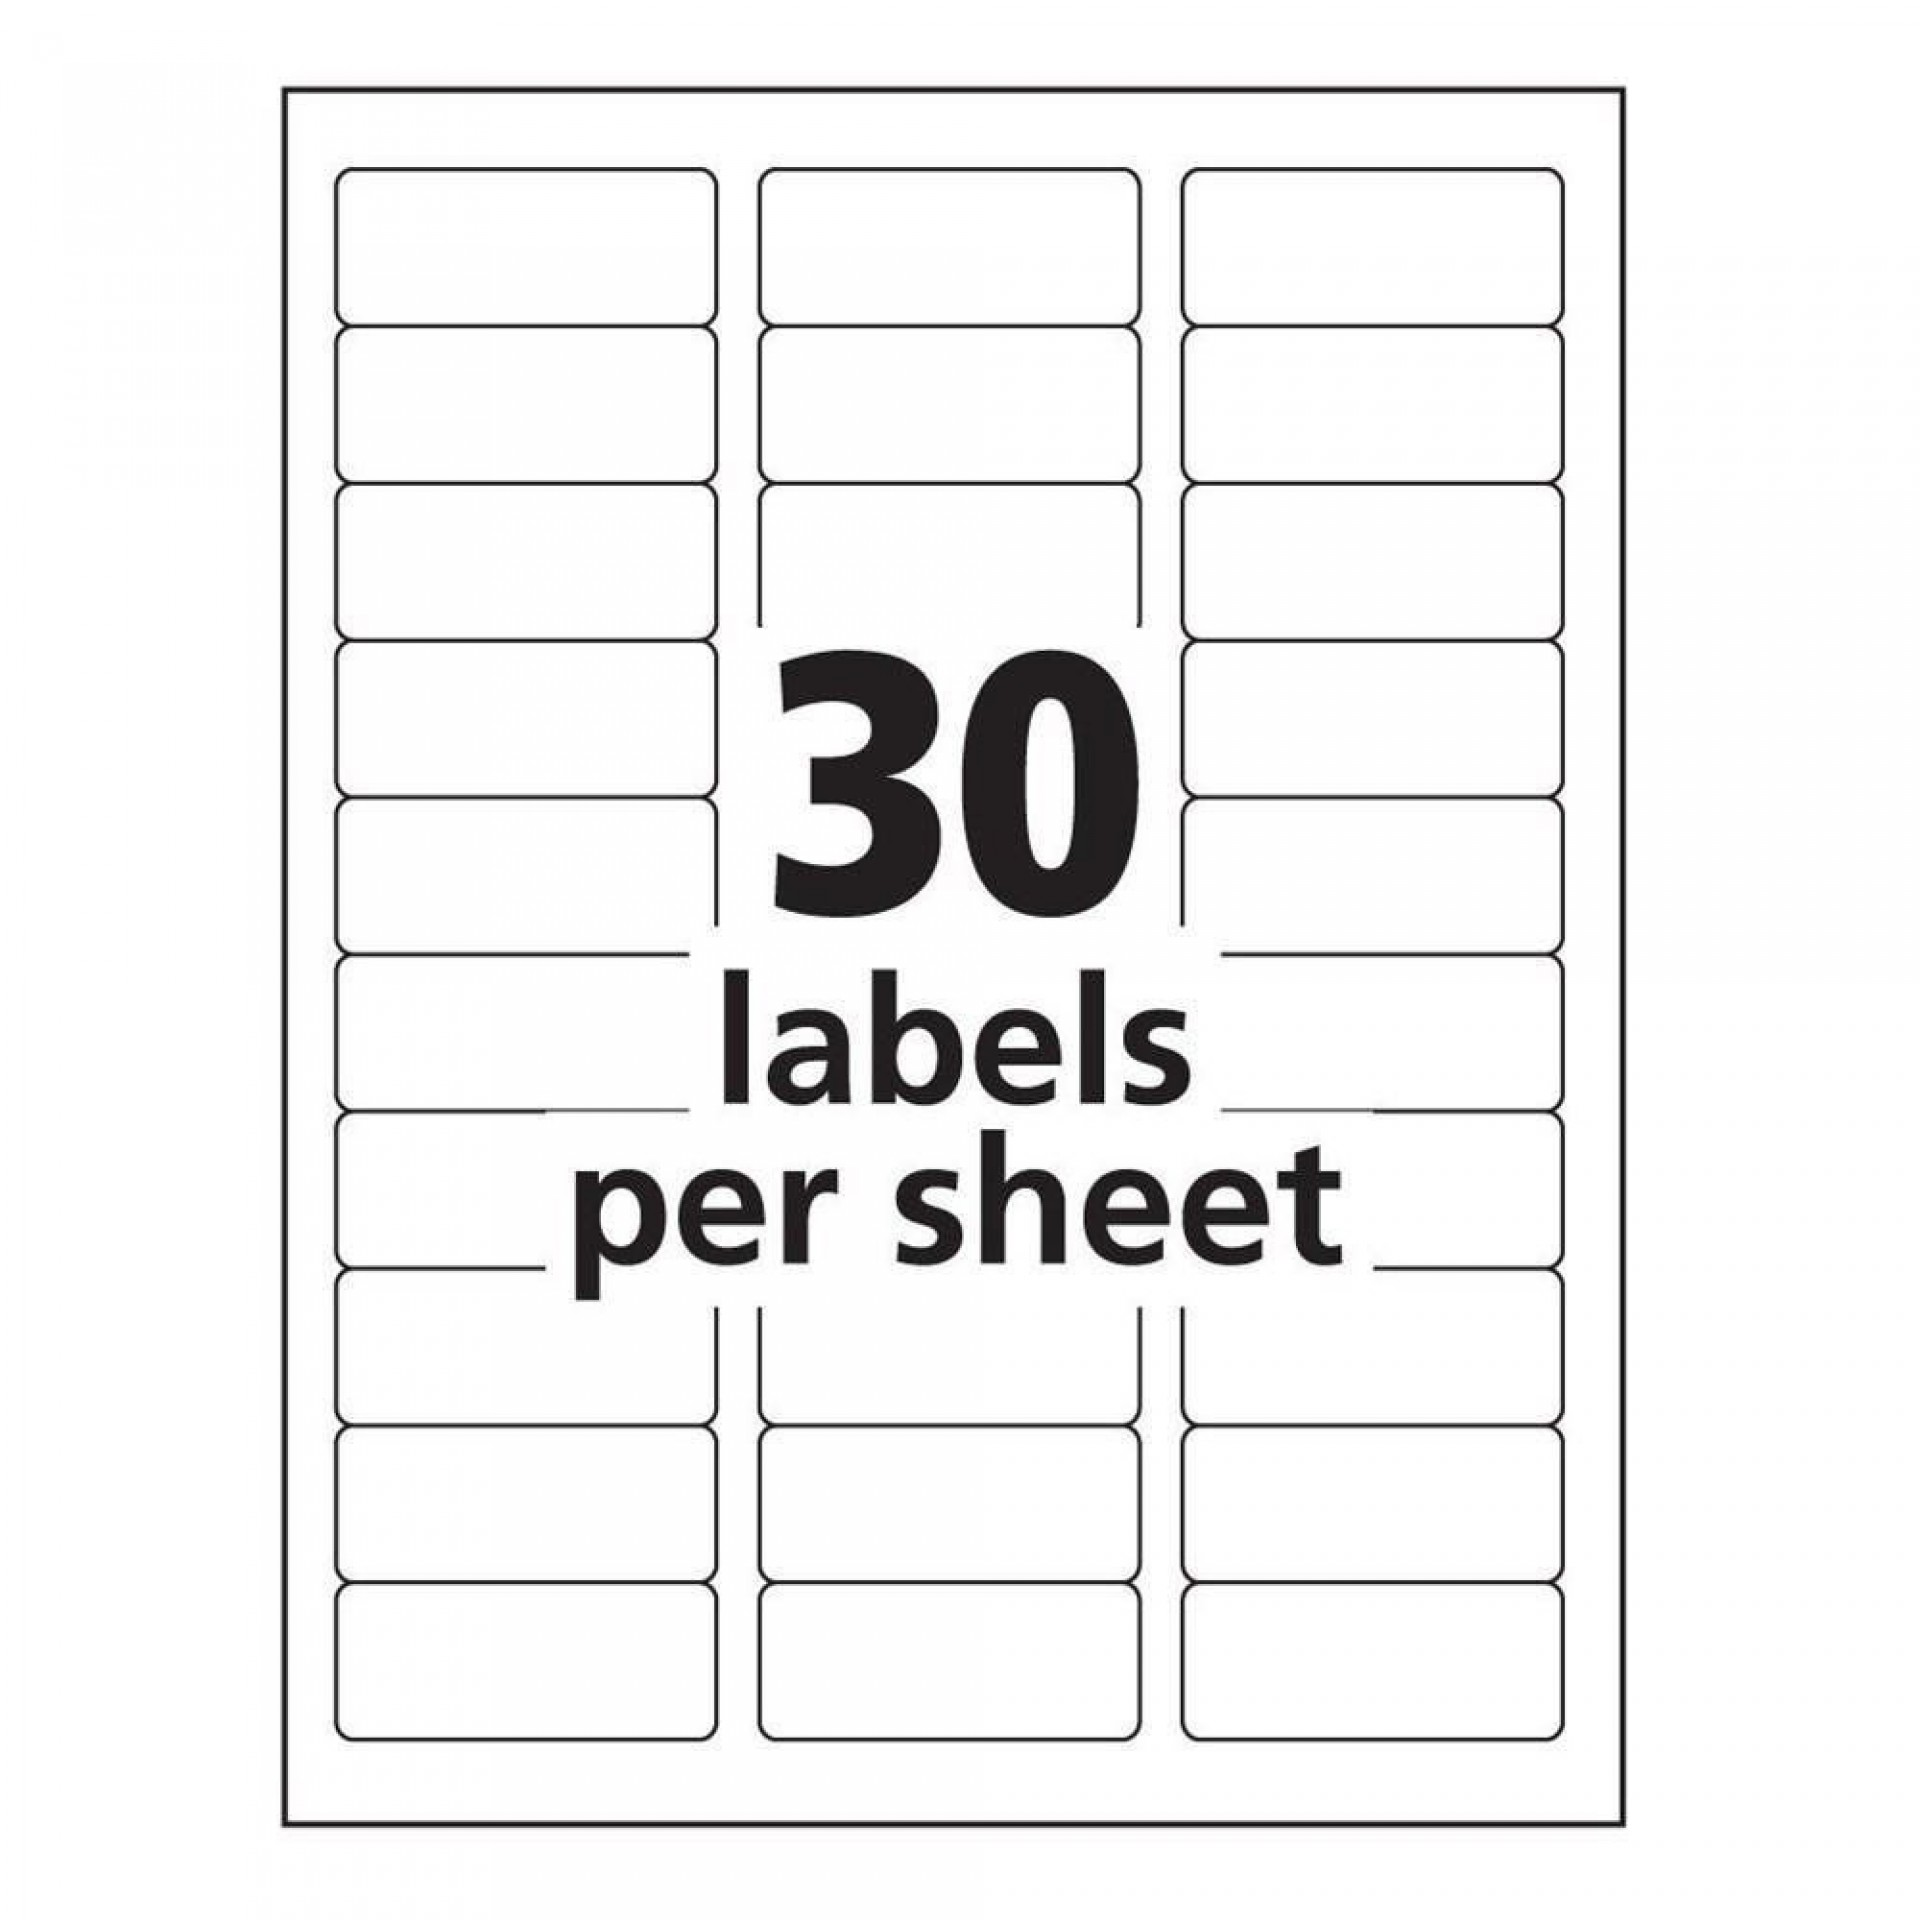 003 Wonderful Label Template For Word Picture  Avery 8 Per Sheet Free Circle A41920